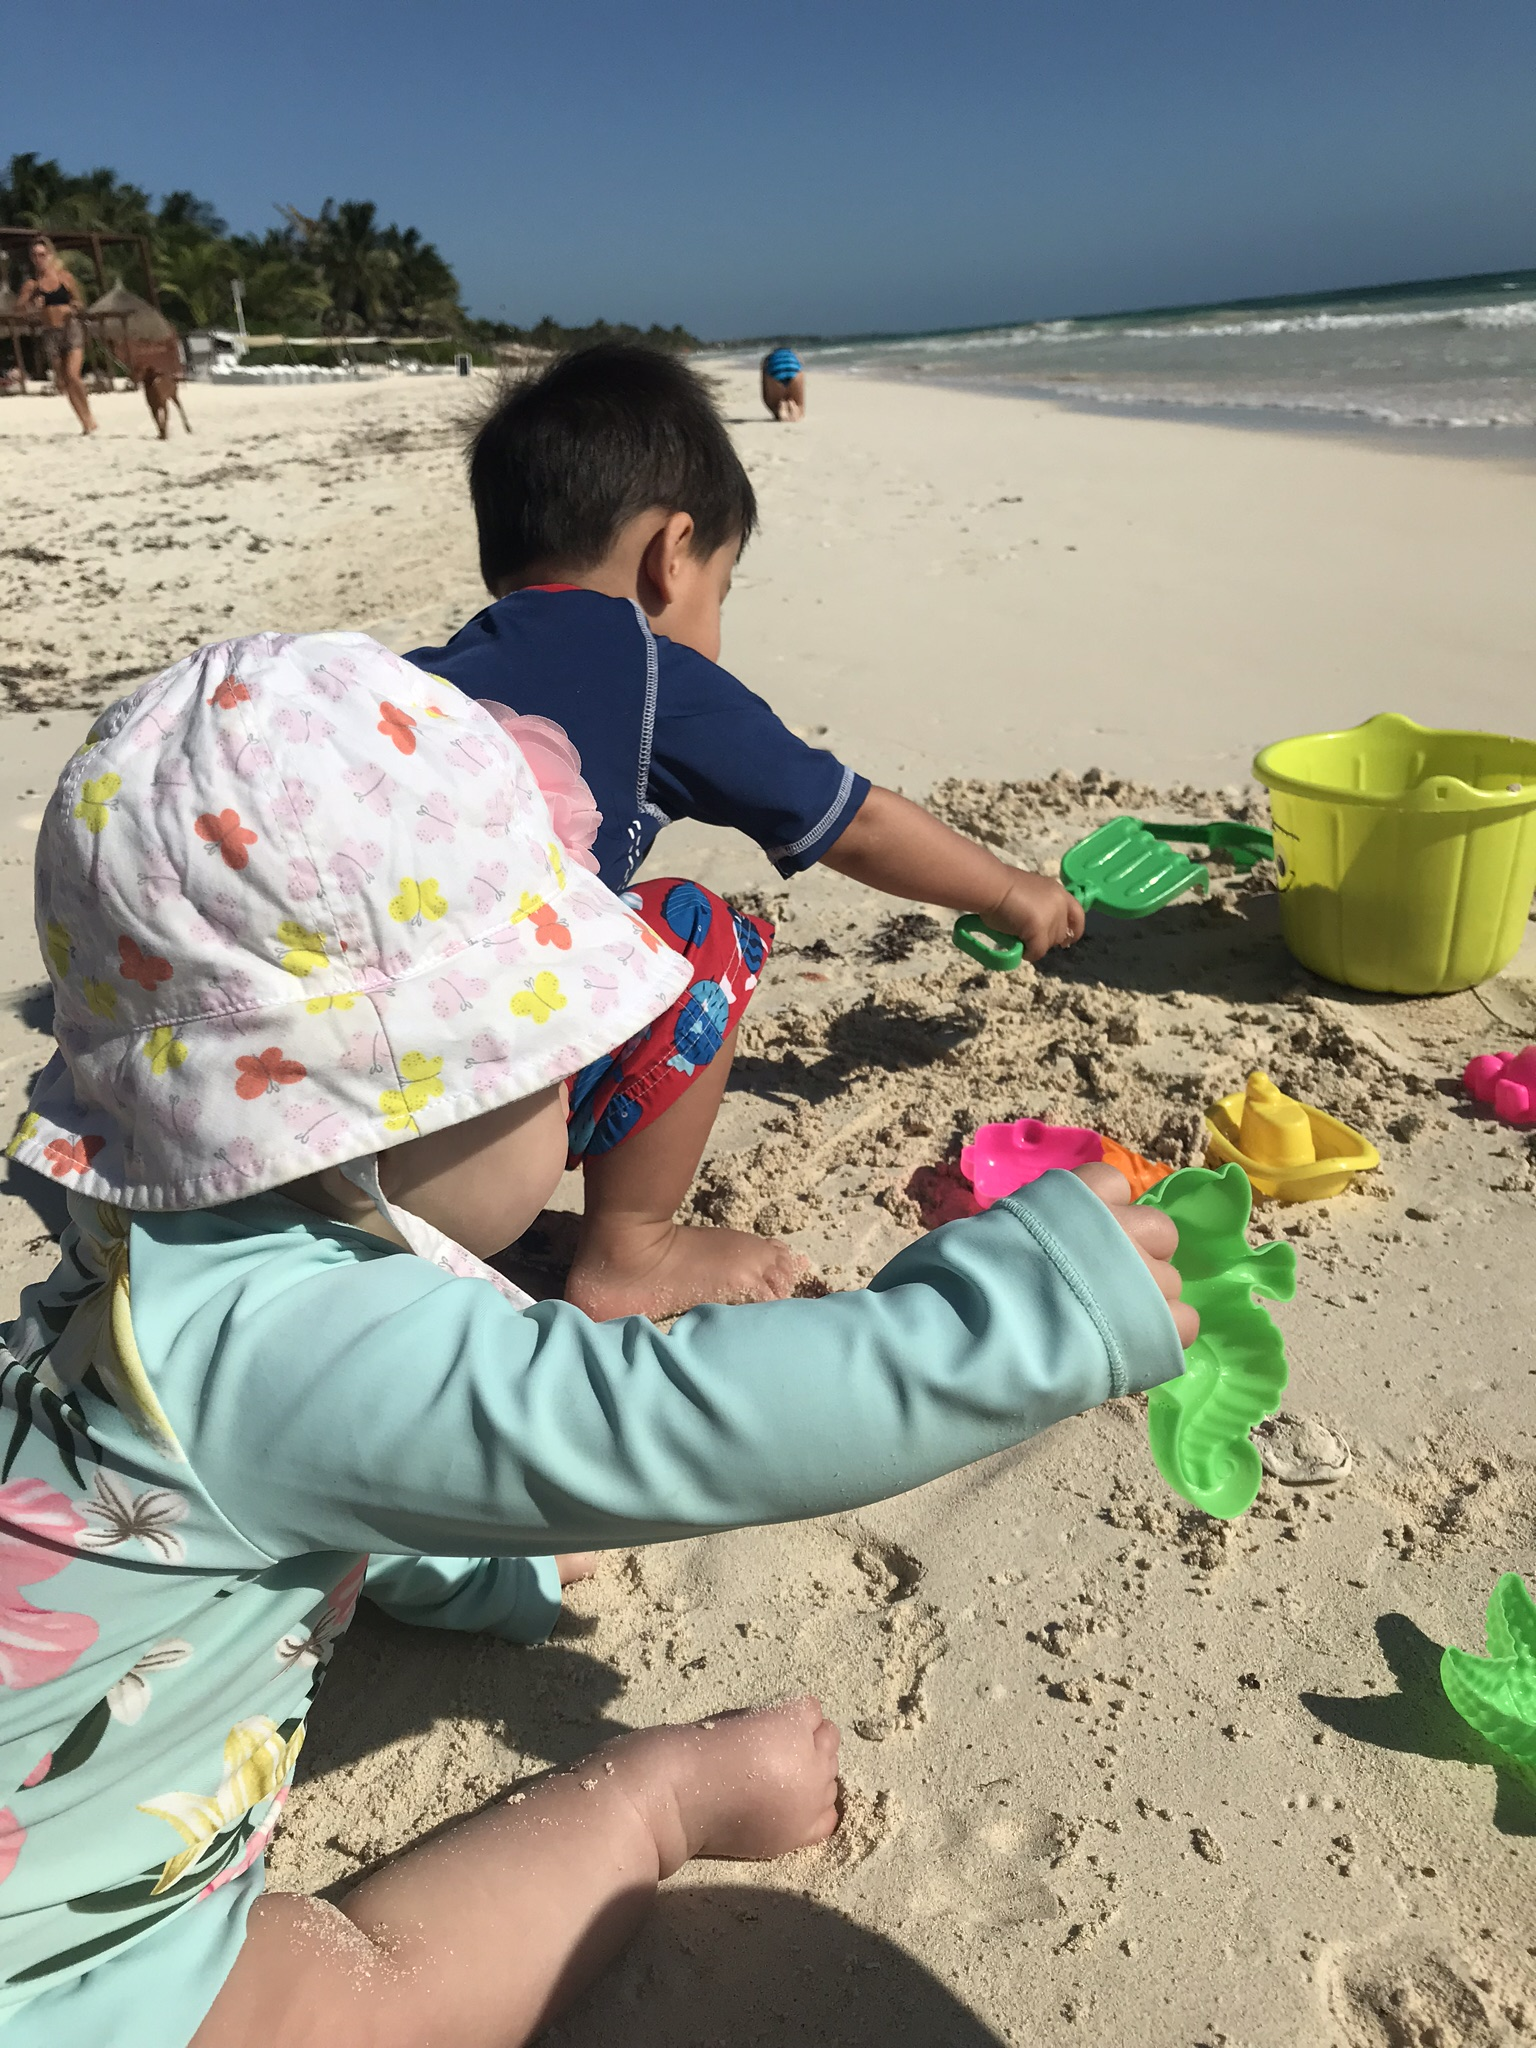 Tulum Beach - La Zebra Beach Club with a baby and a toddler